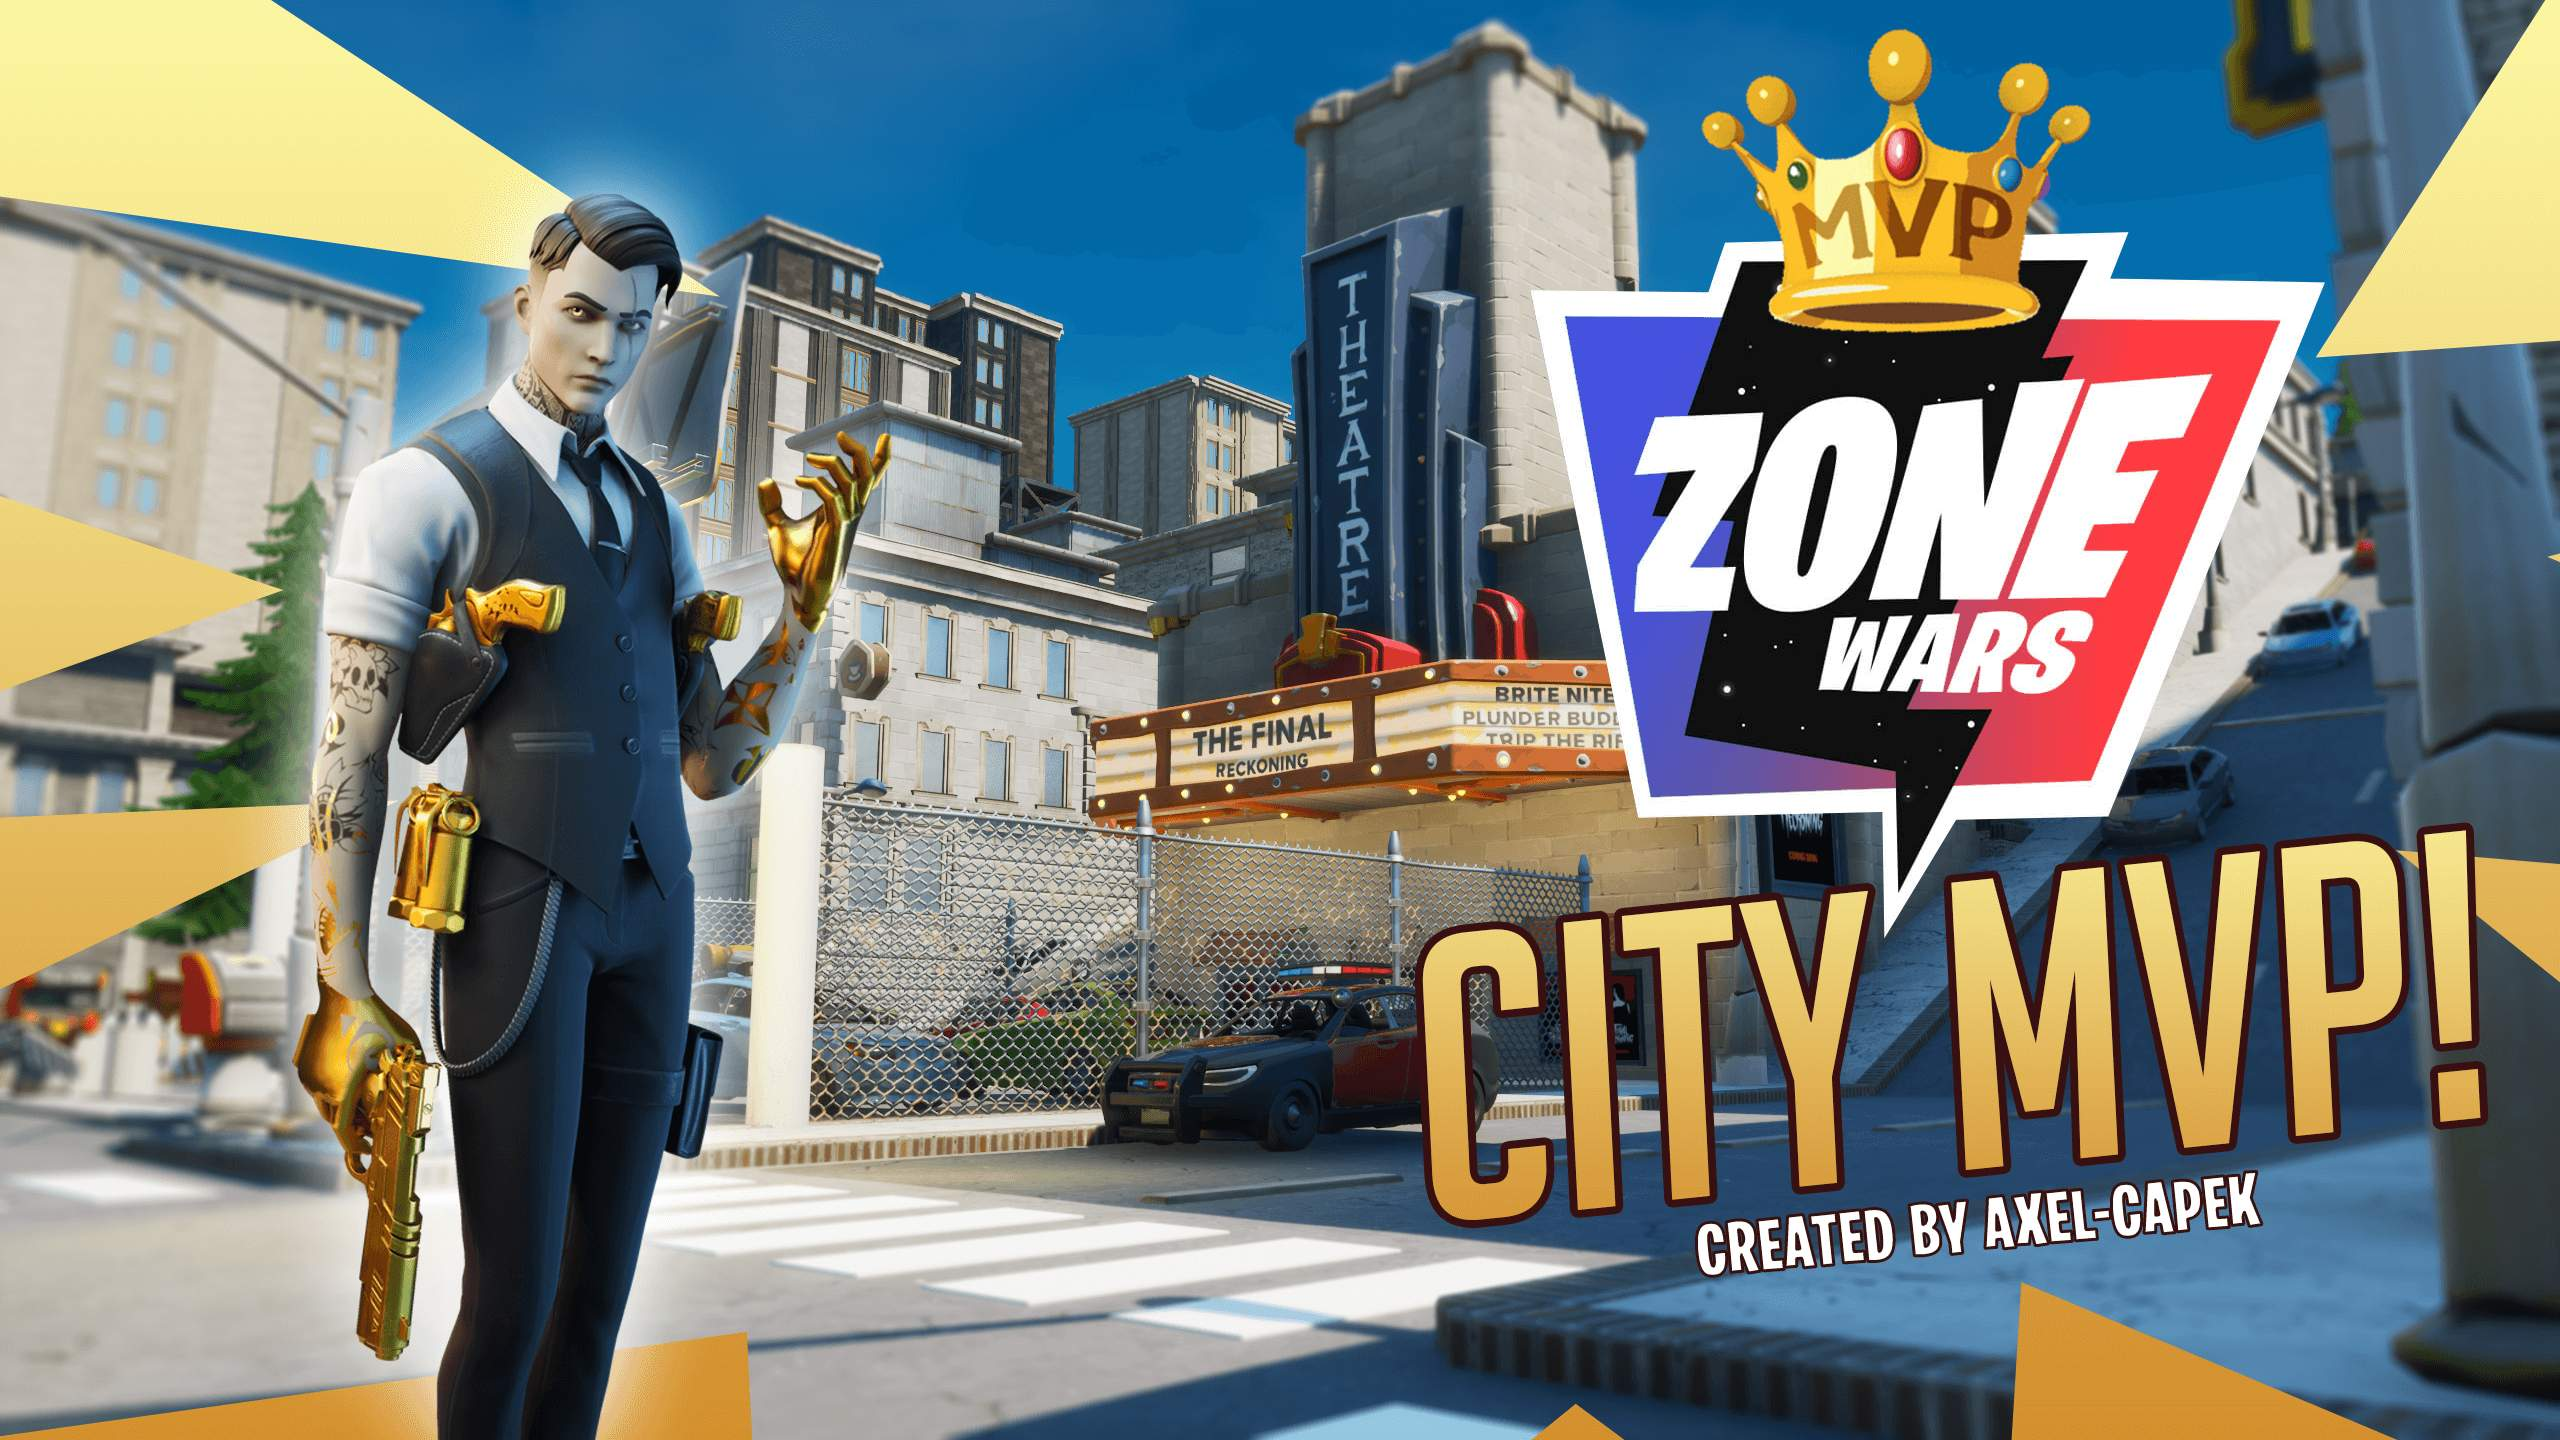 ZONE WARS: CITY MVP!